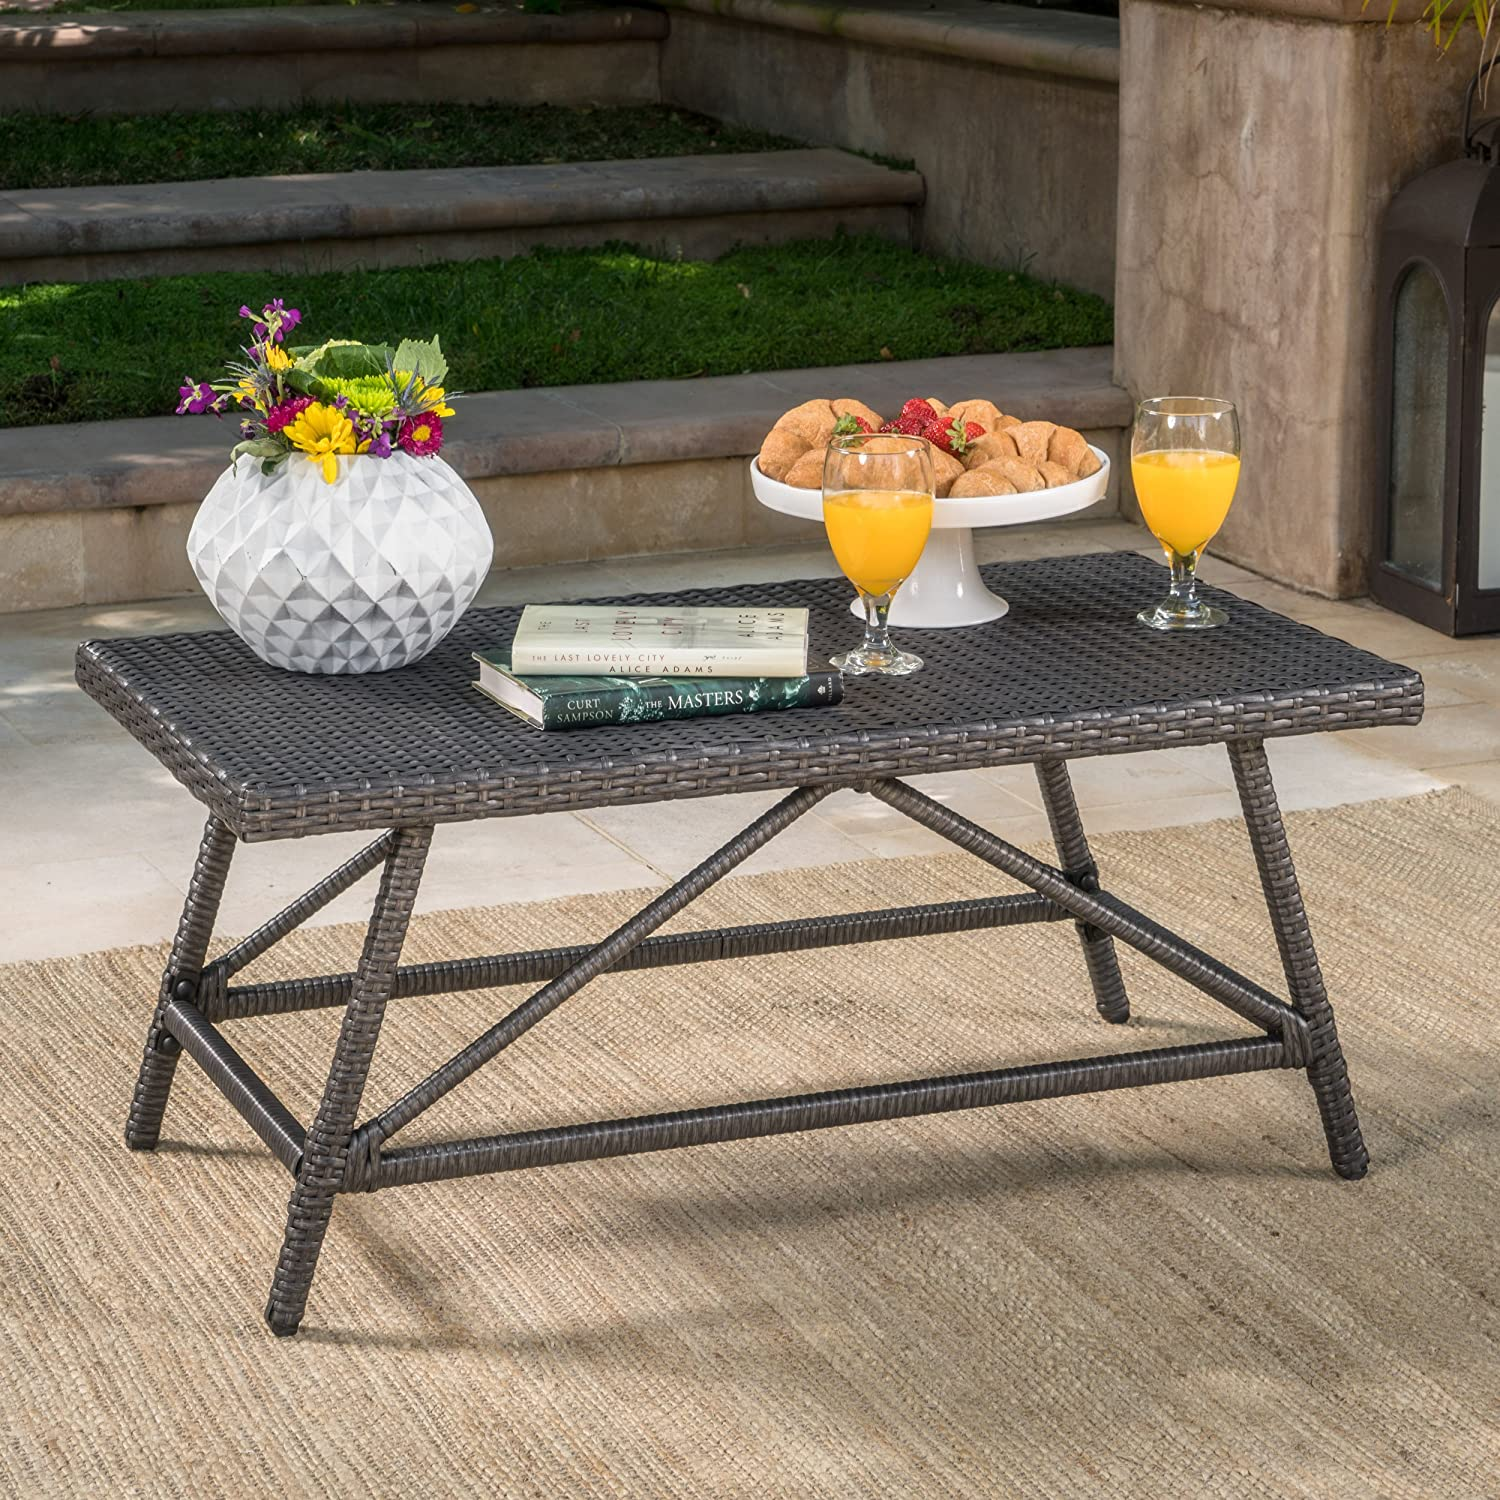 Christopher Knight Home 301837 Hazel Outdoor Grey Wicker Coffee Table, Red-4580